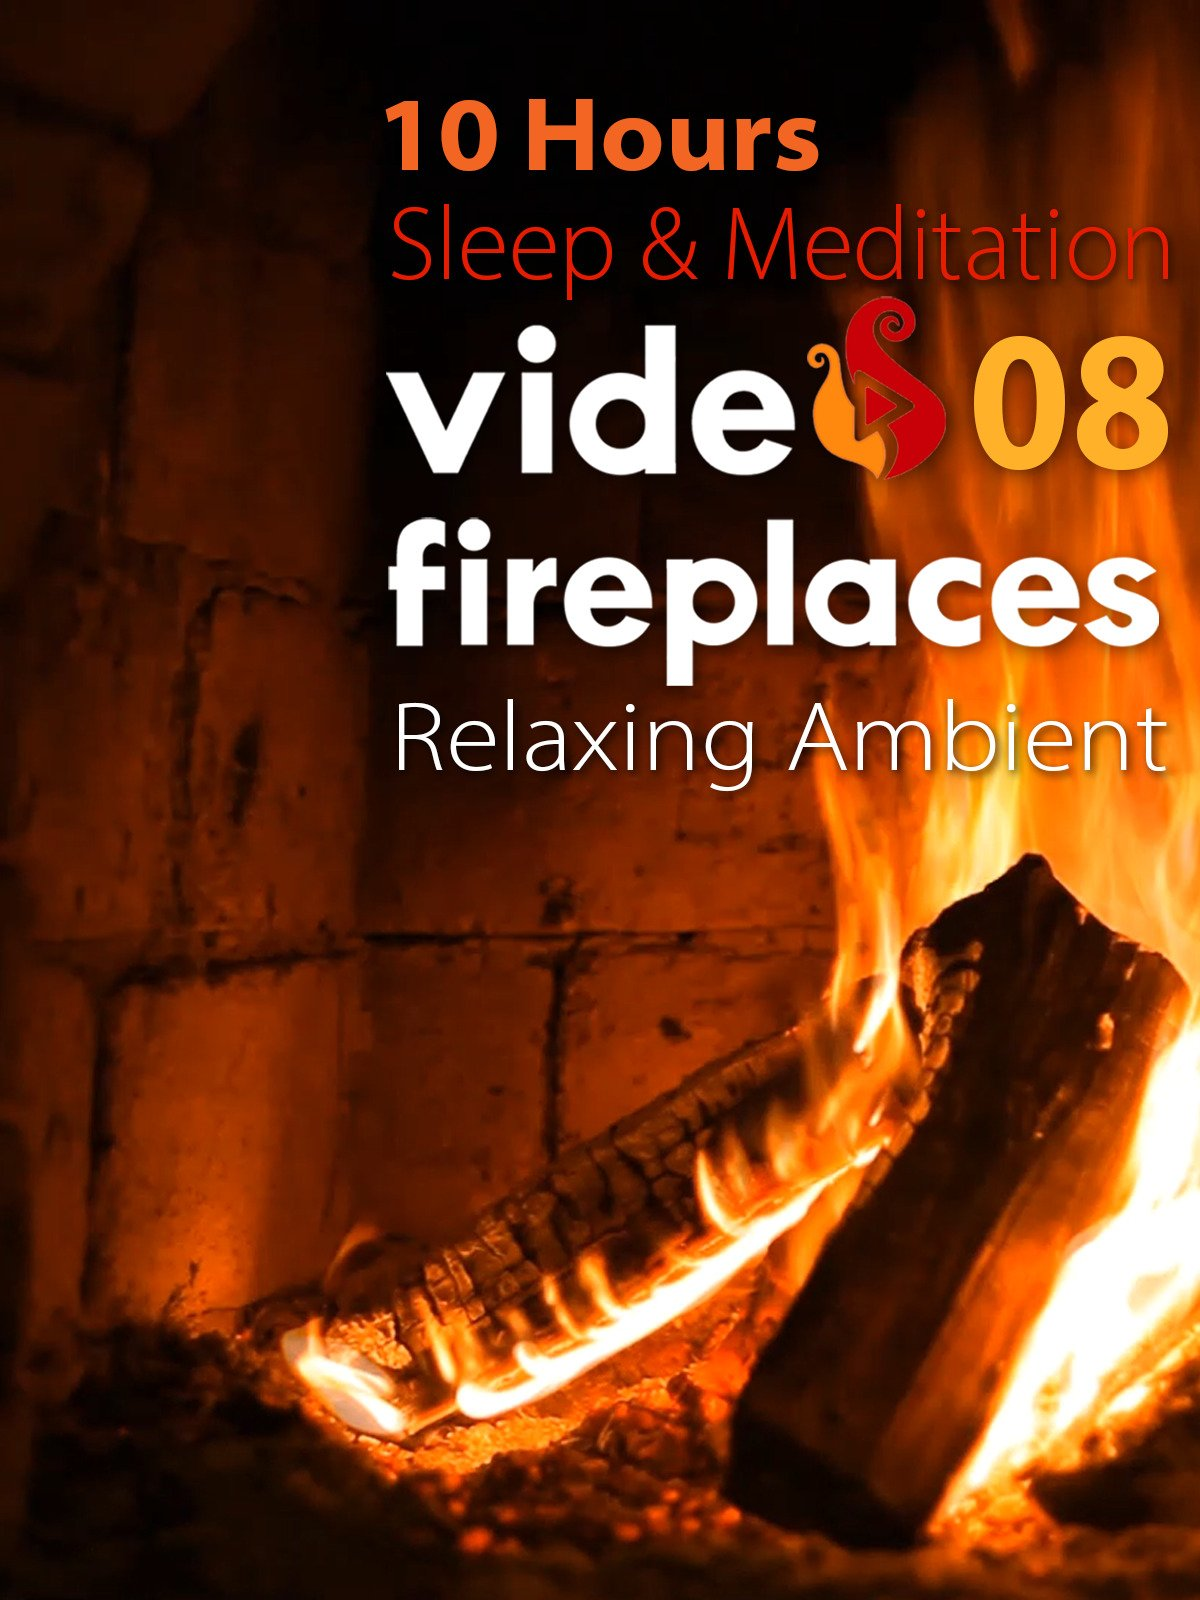 10 Hours Sleep & Meditation Video Fireplaces 08 Relaxing Ambient